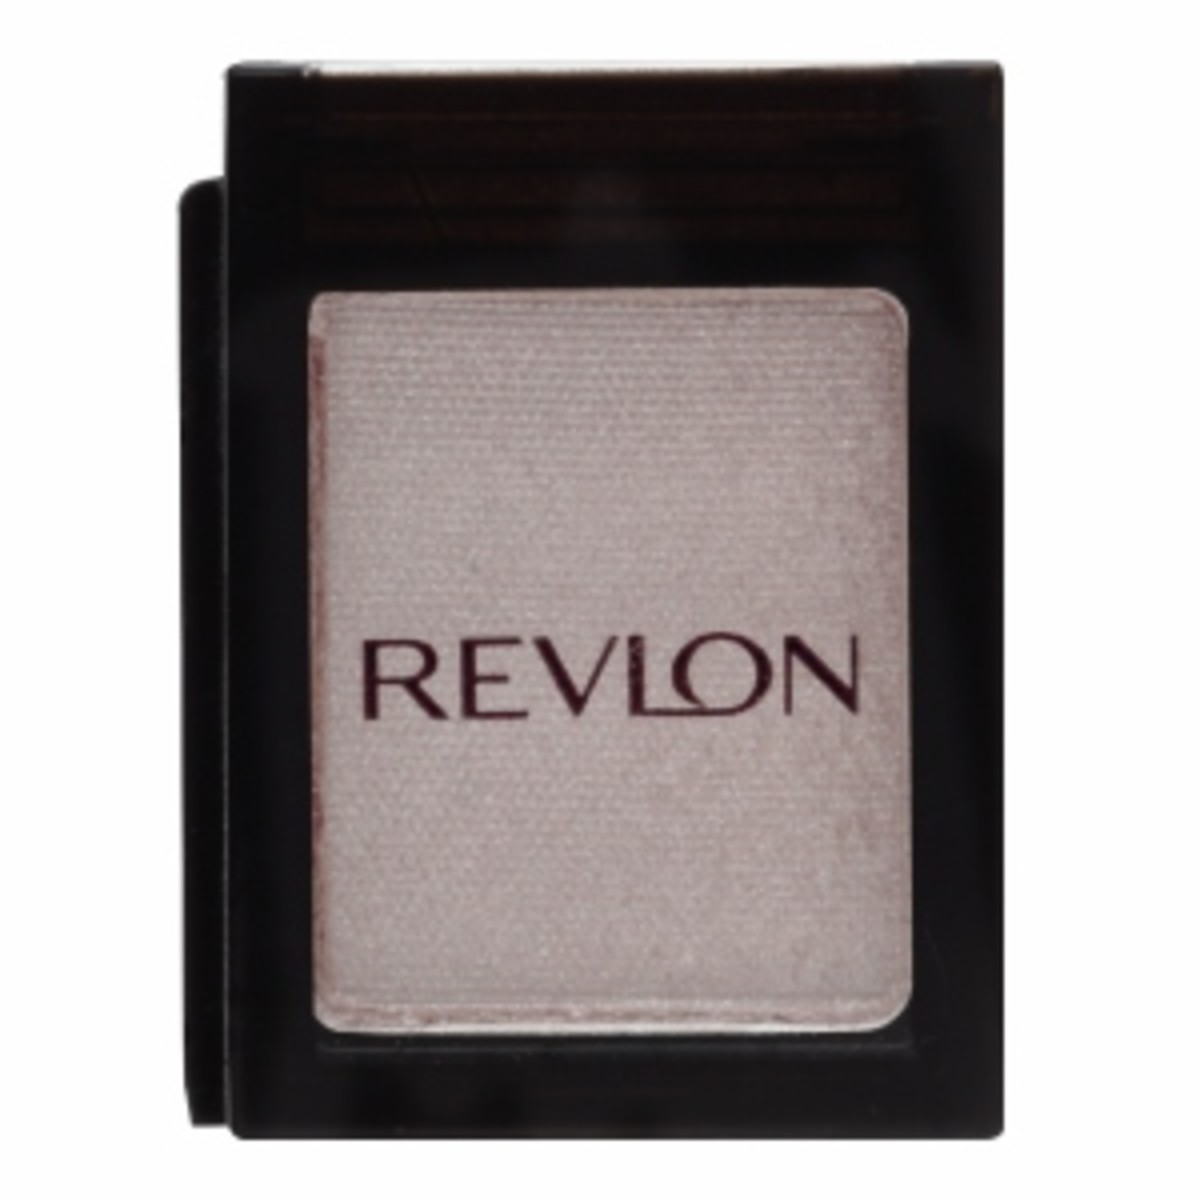 Revlon ColorStay ShadowLinks in Taupe